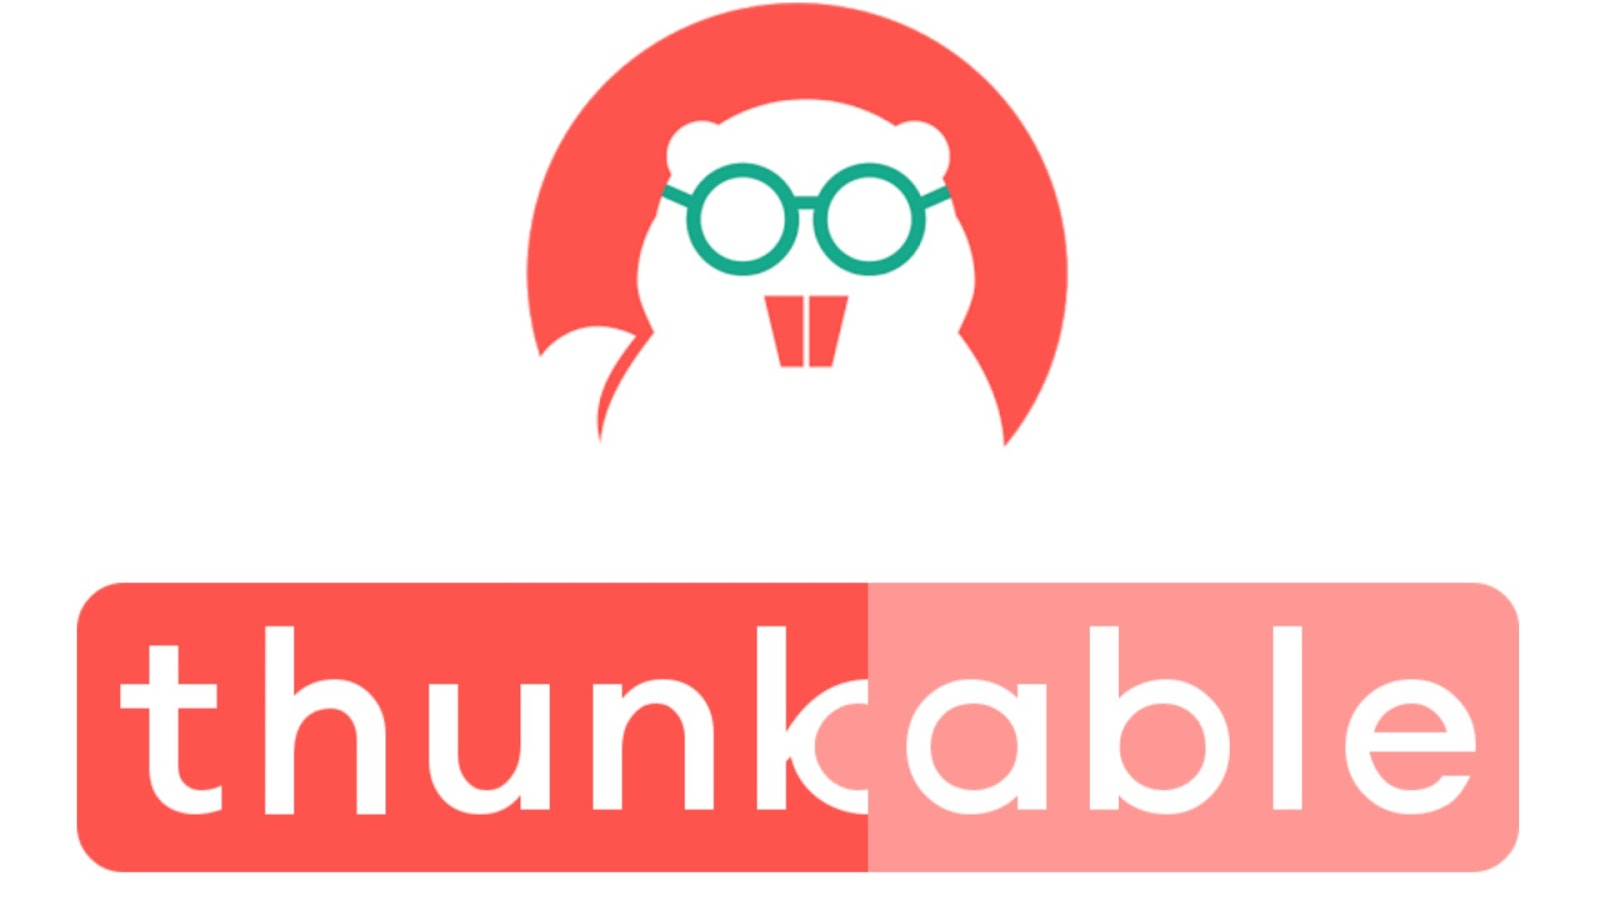 Thunkable: All you need about